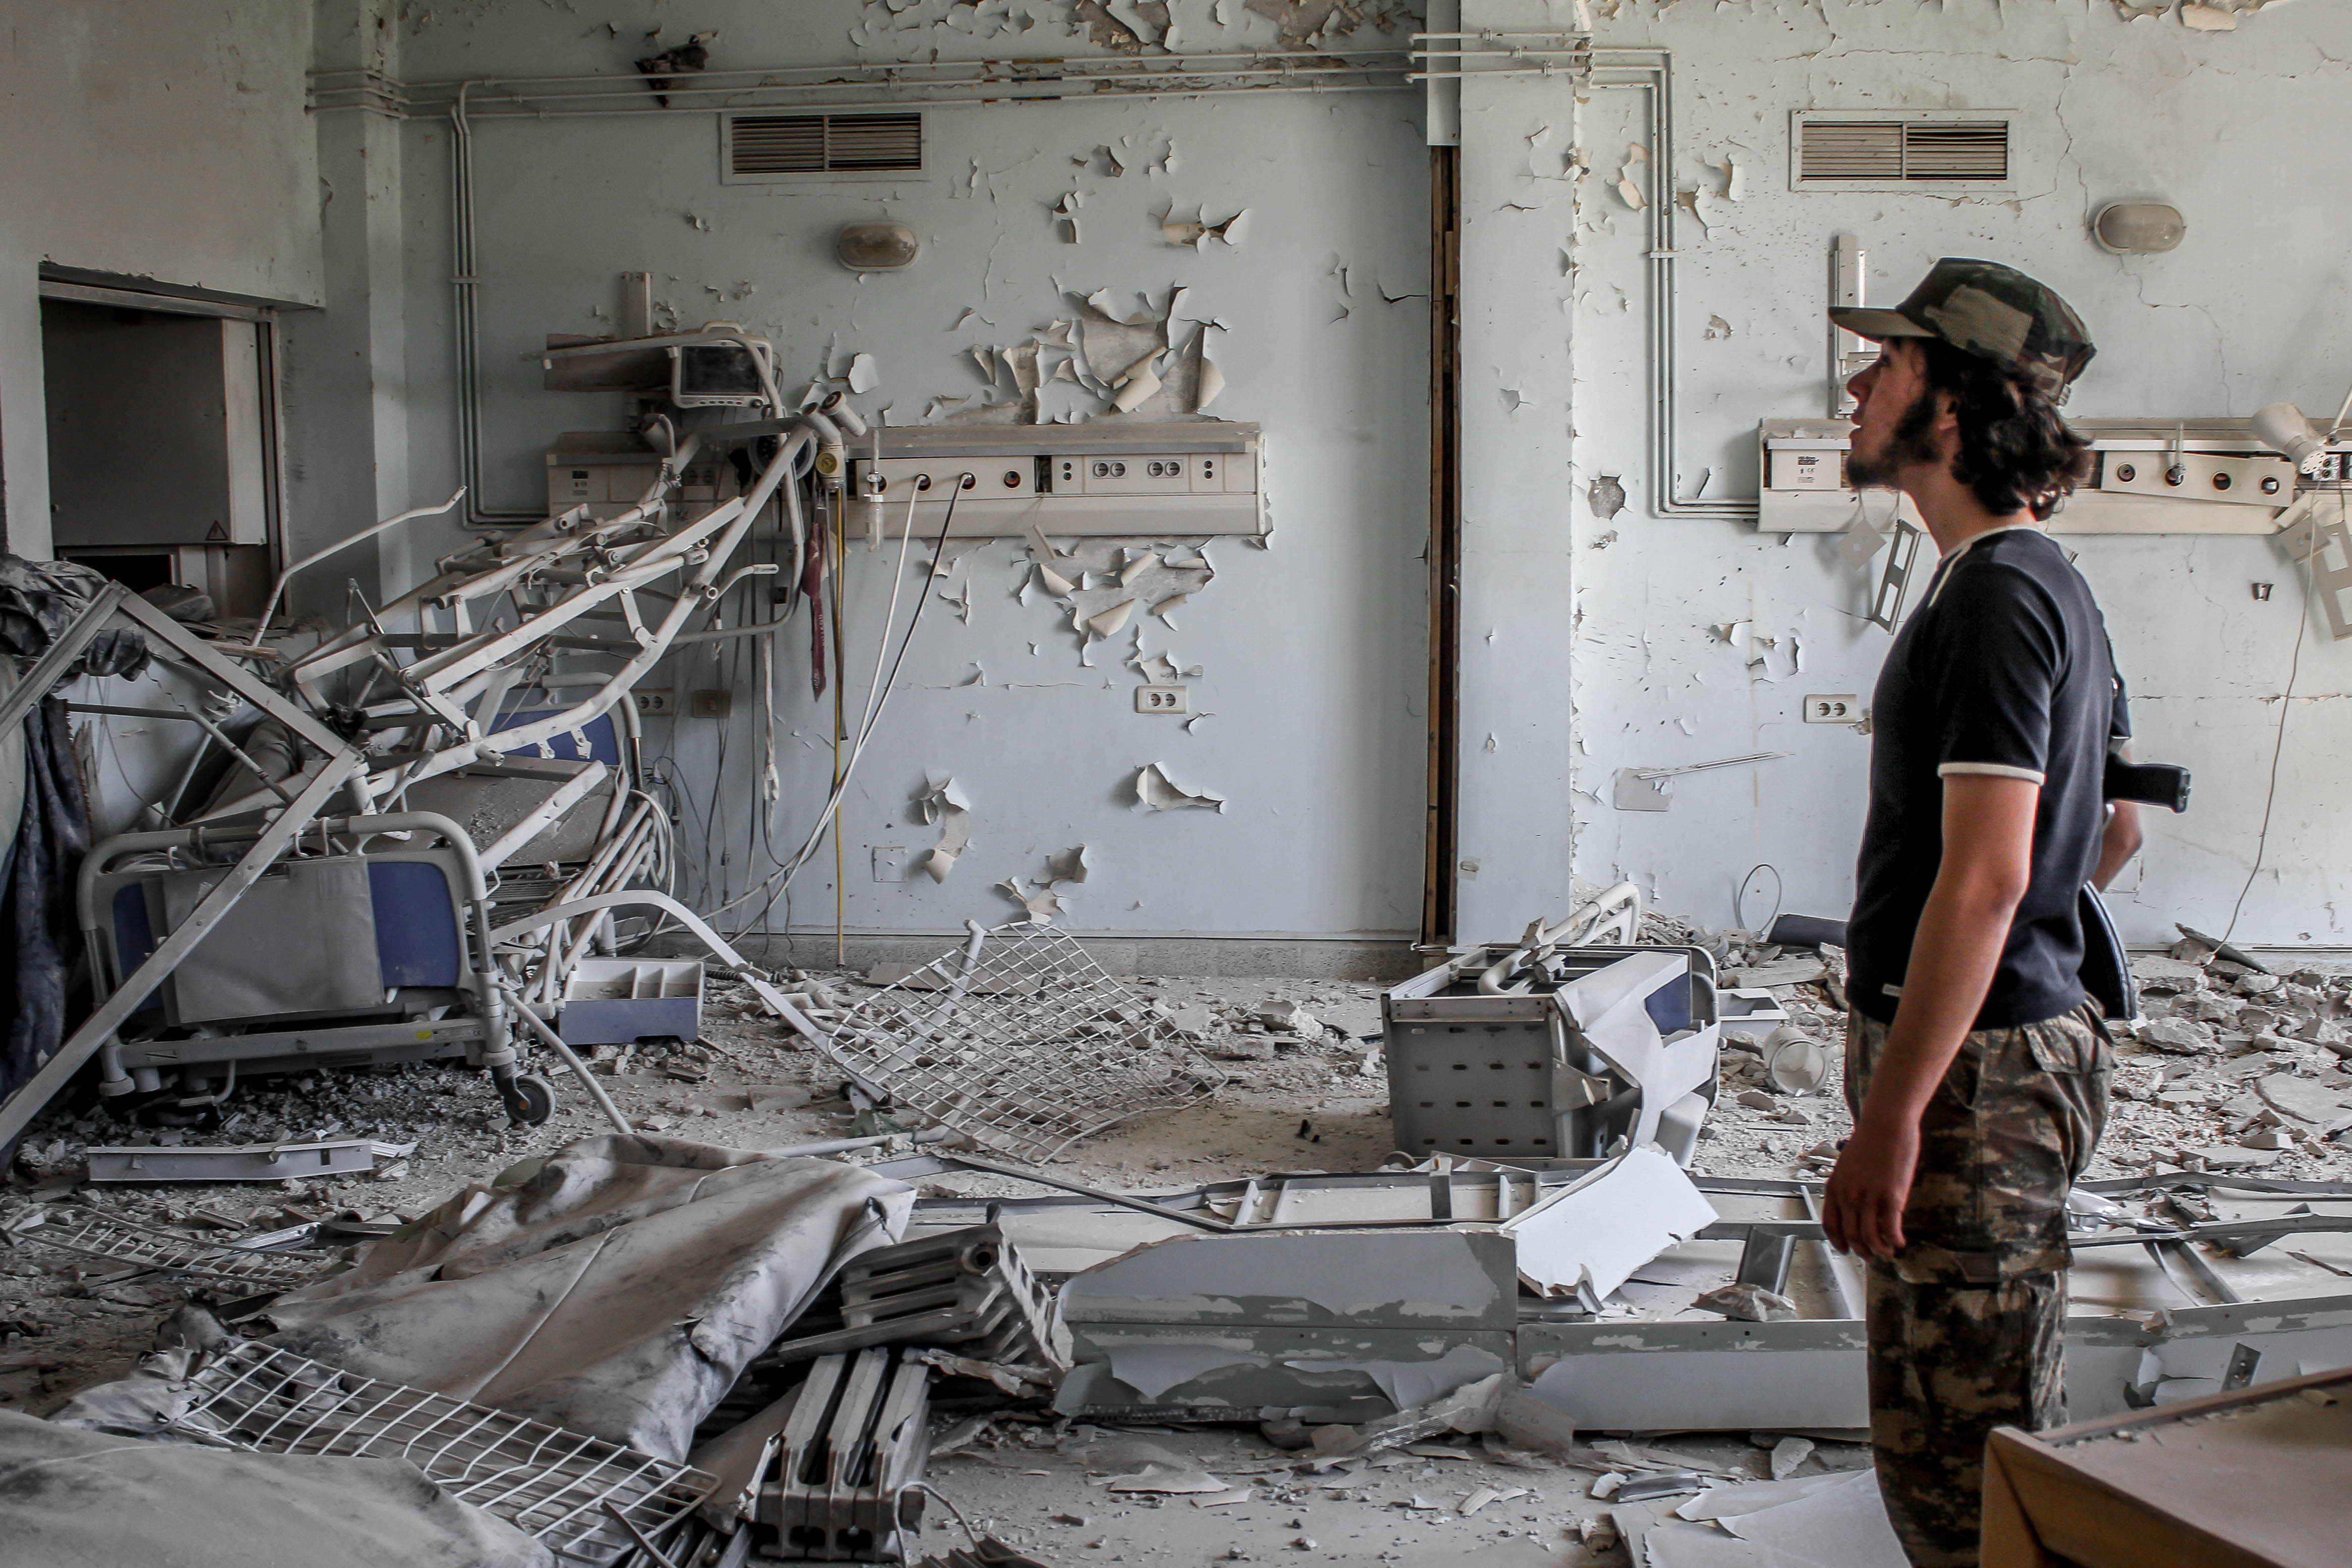 A man surveys the remnants of a Syrian hospital after an airstrike. Lau hid in the basement with the hospital staff until it was over. Photo: Chris Lau.